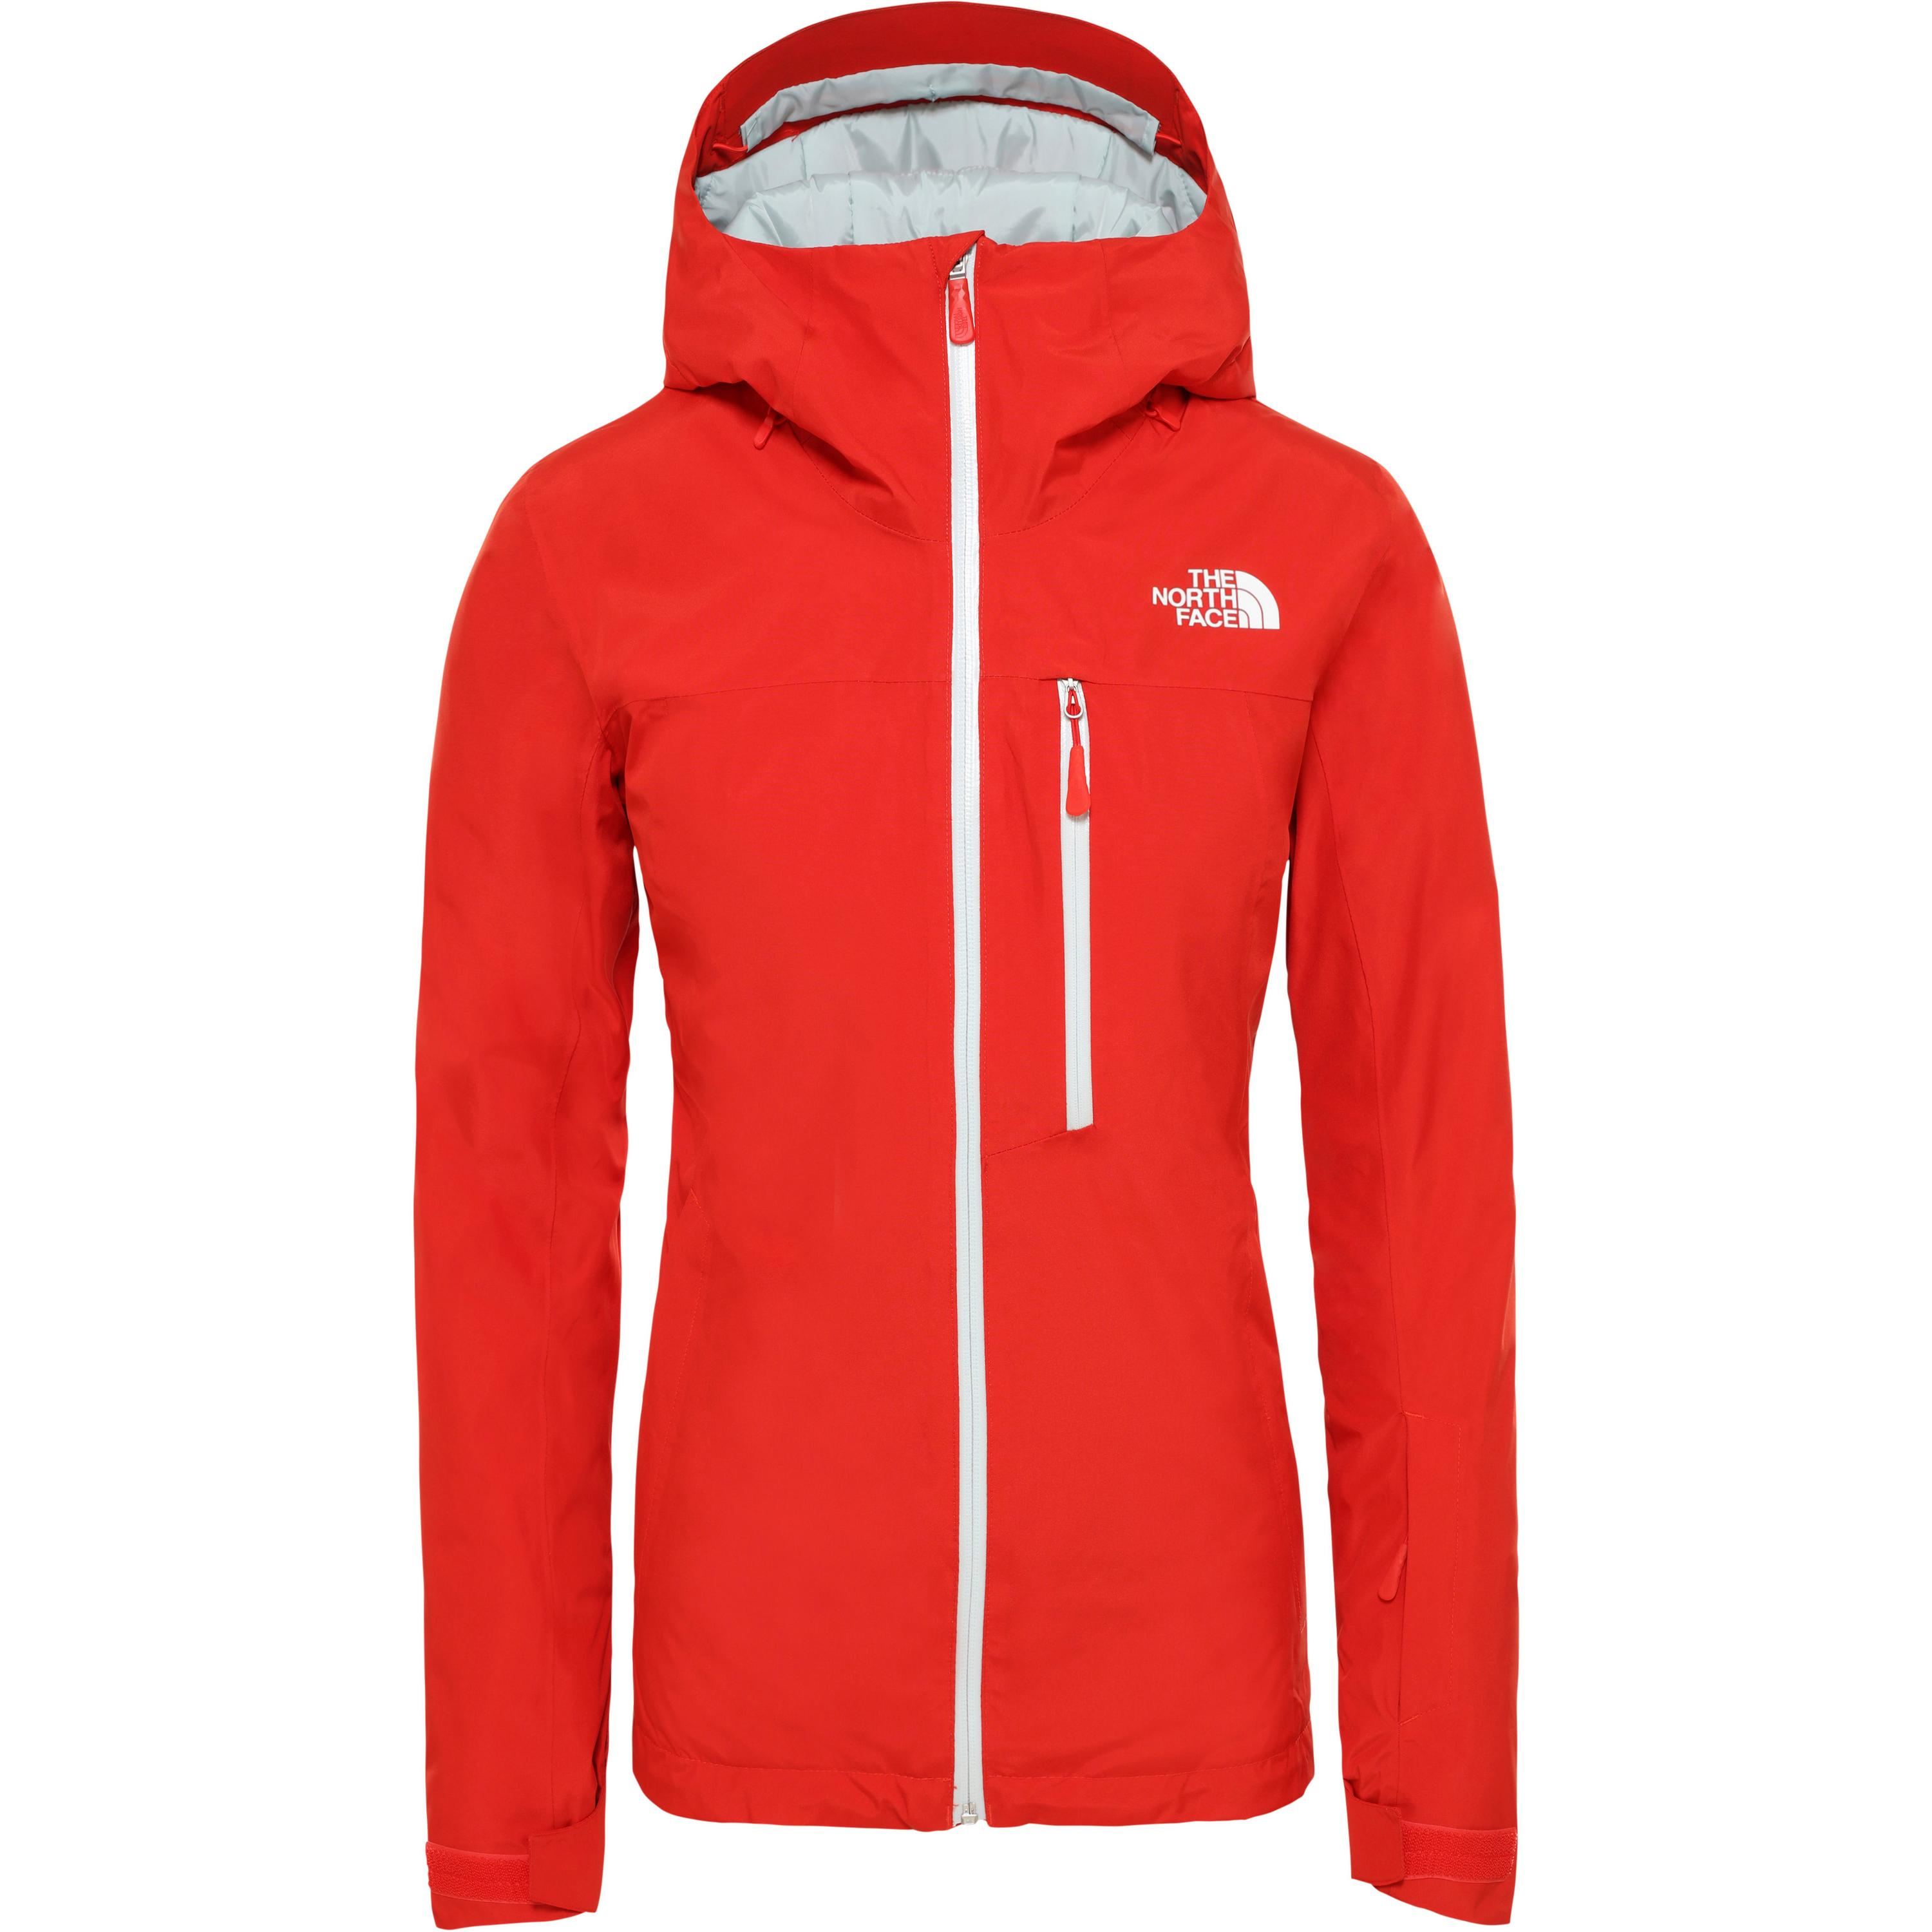 The North Face Descendit Skijacke Damen (rot)